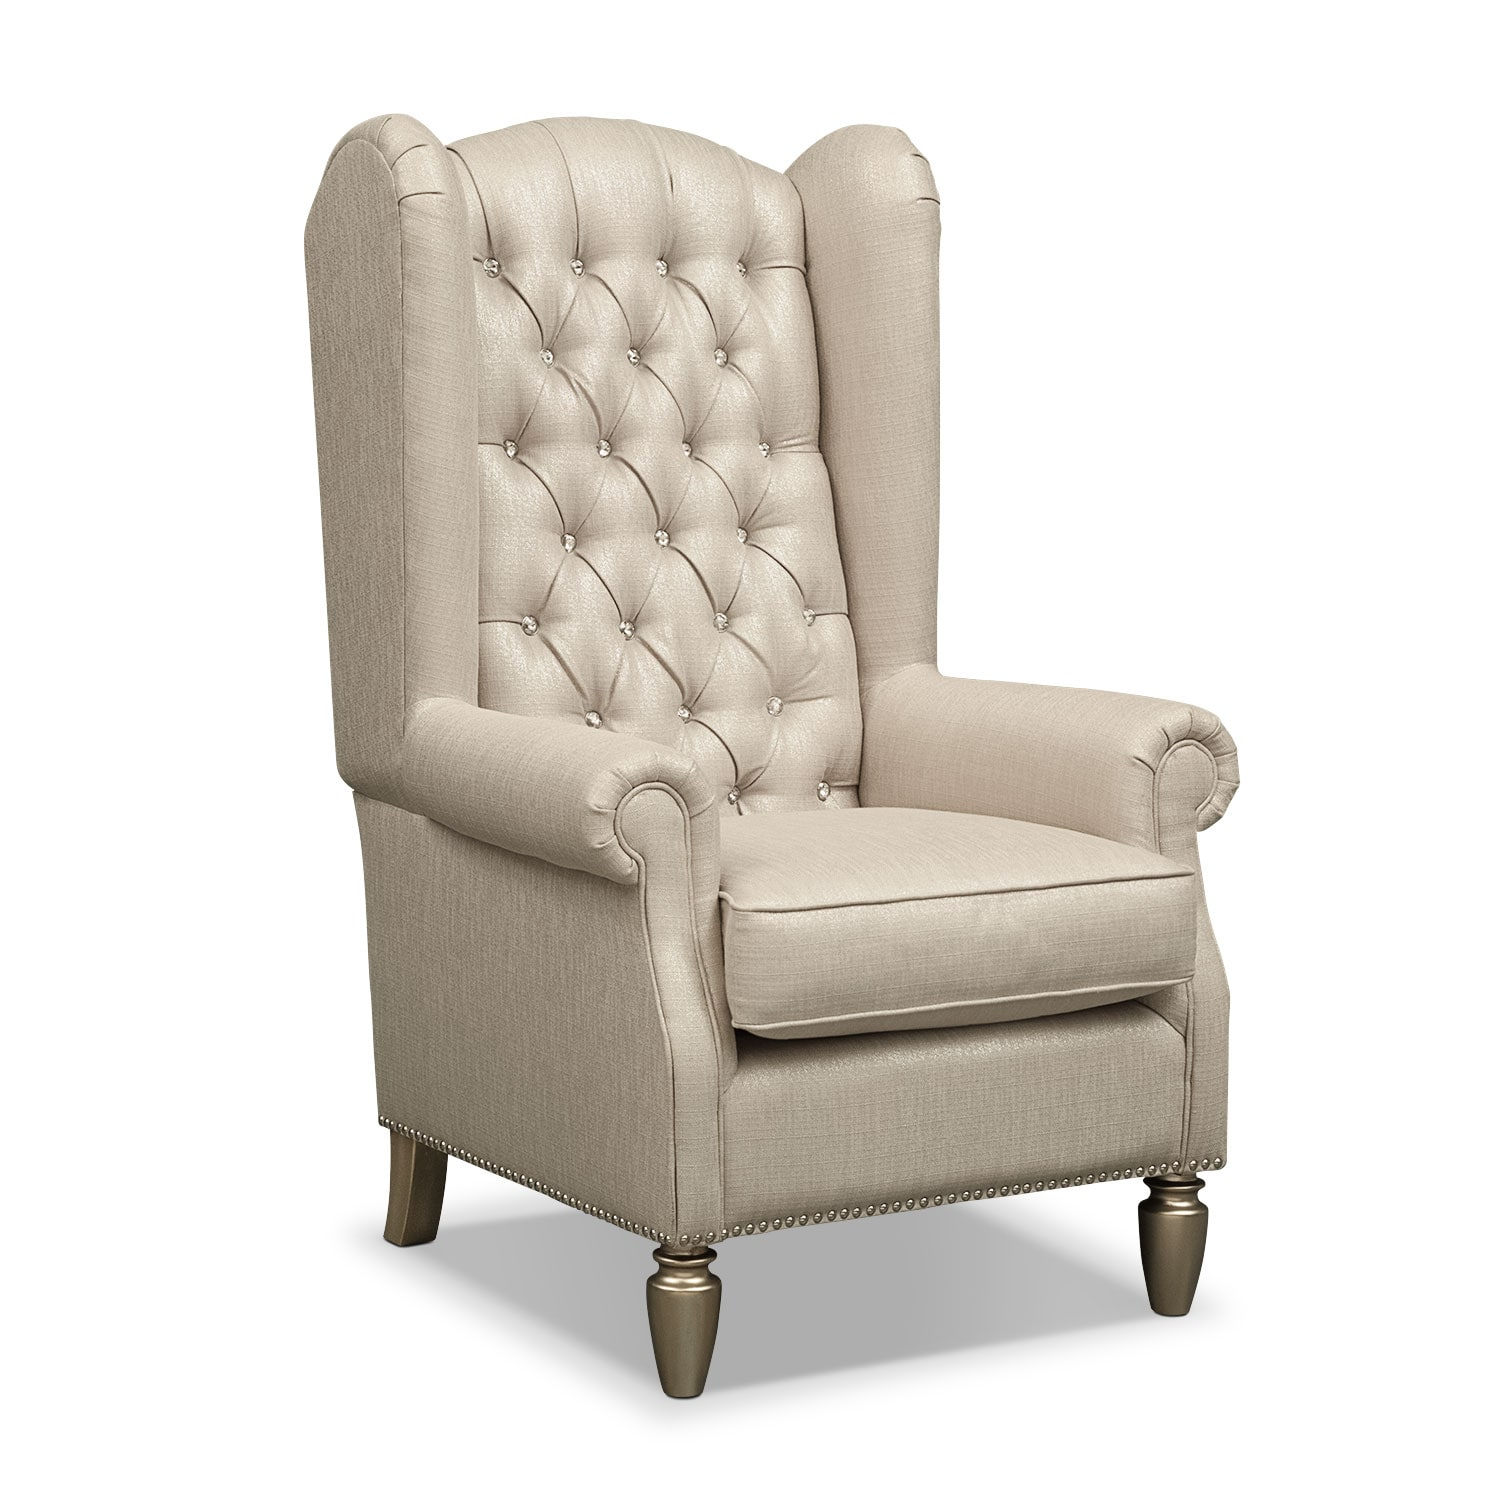 Bedroom Accent Chairs: Cleo Accent Chair - Platinum